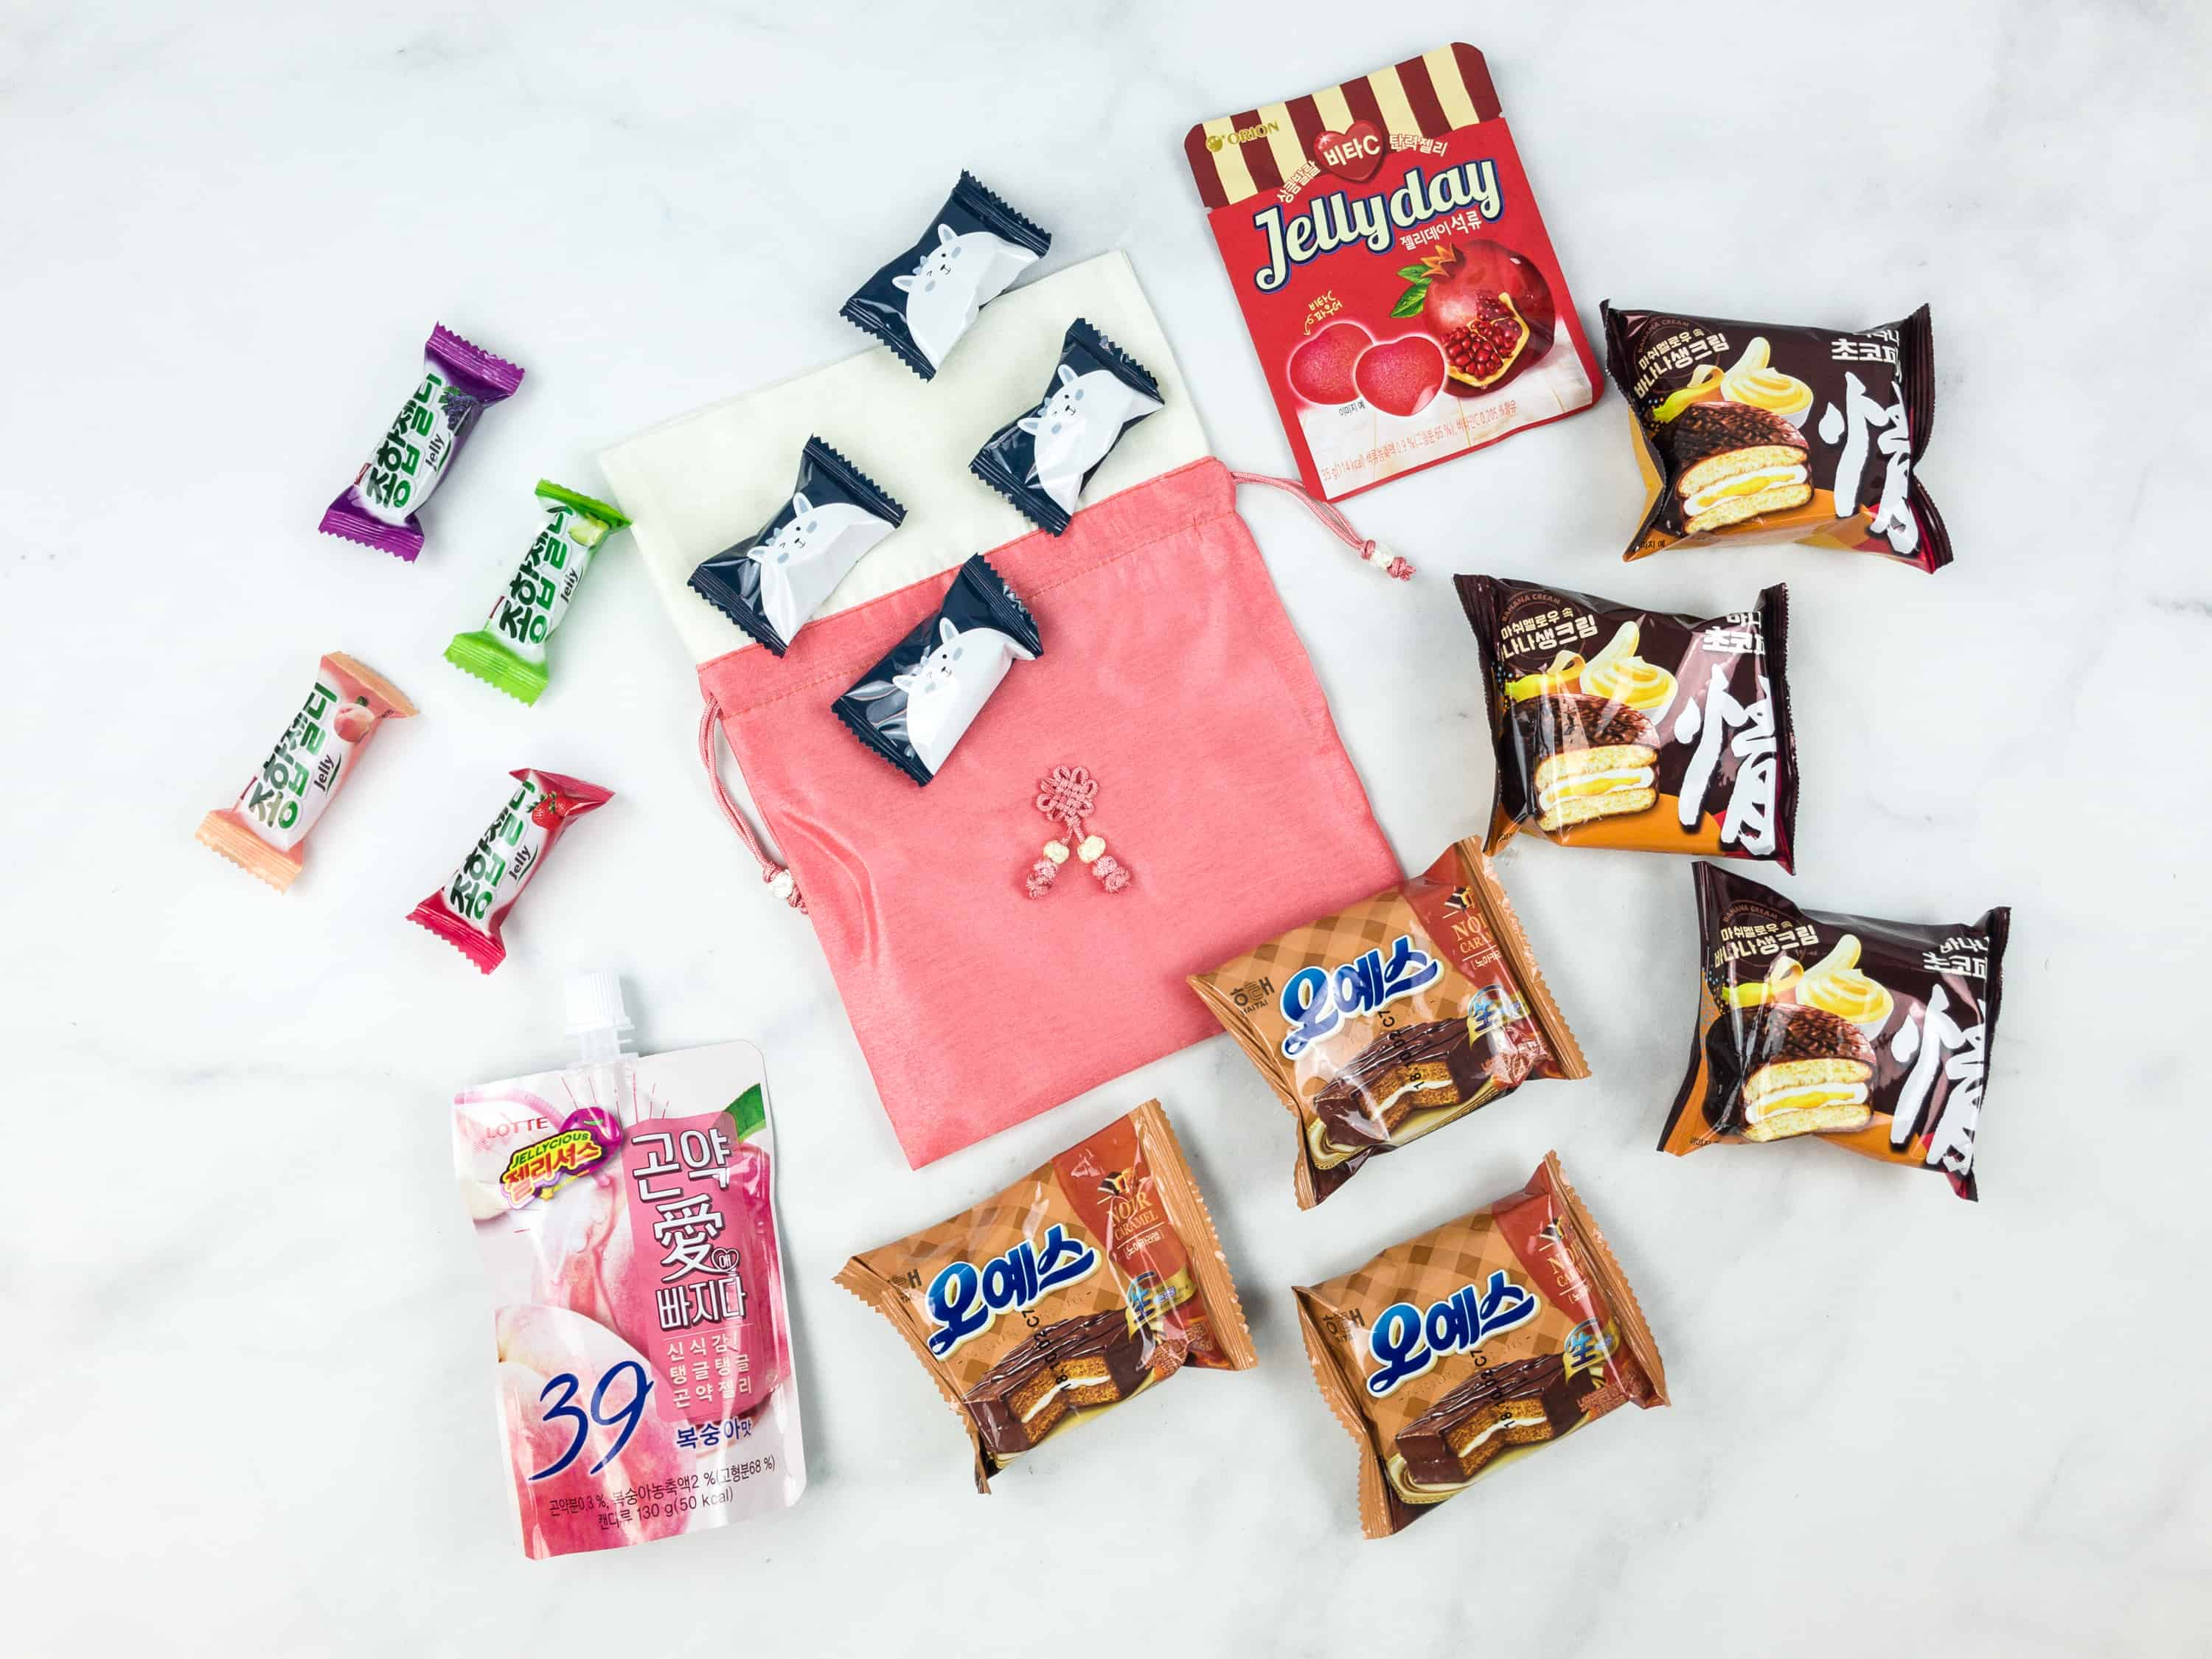 Korean Snack Box August 2018 Subscription Box Review + Coupon